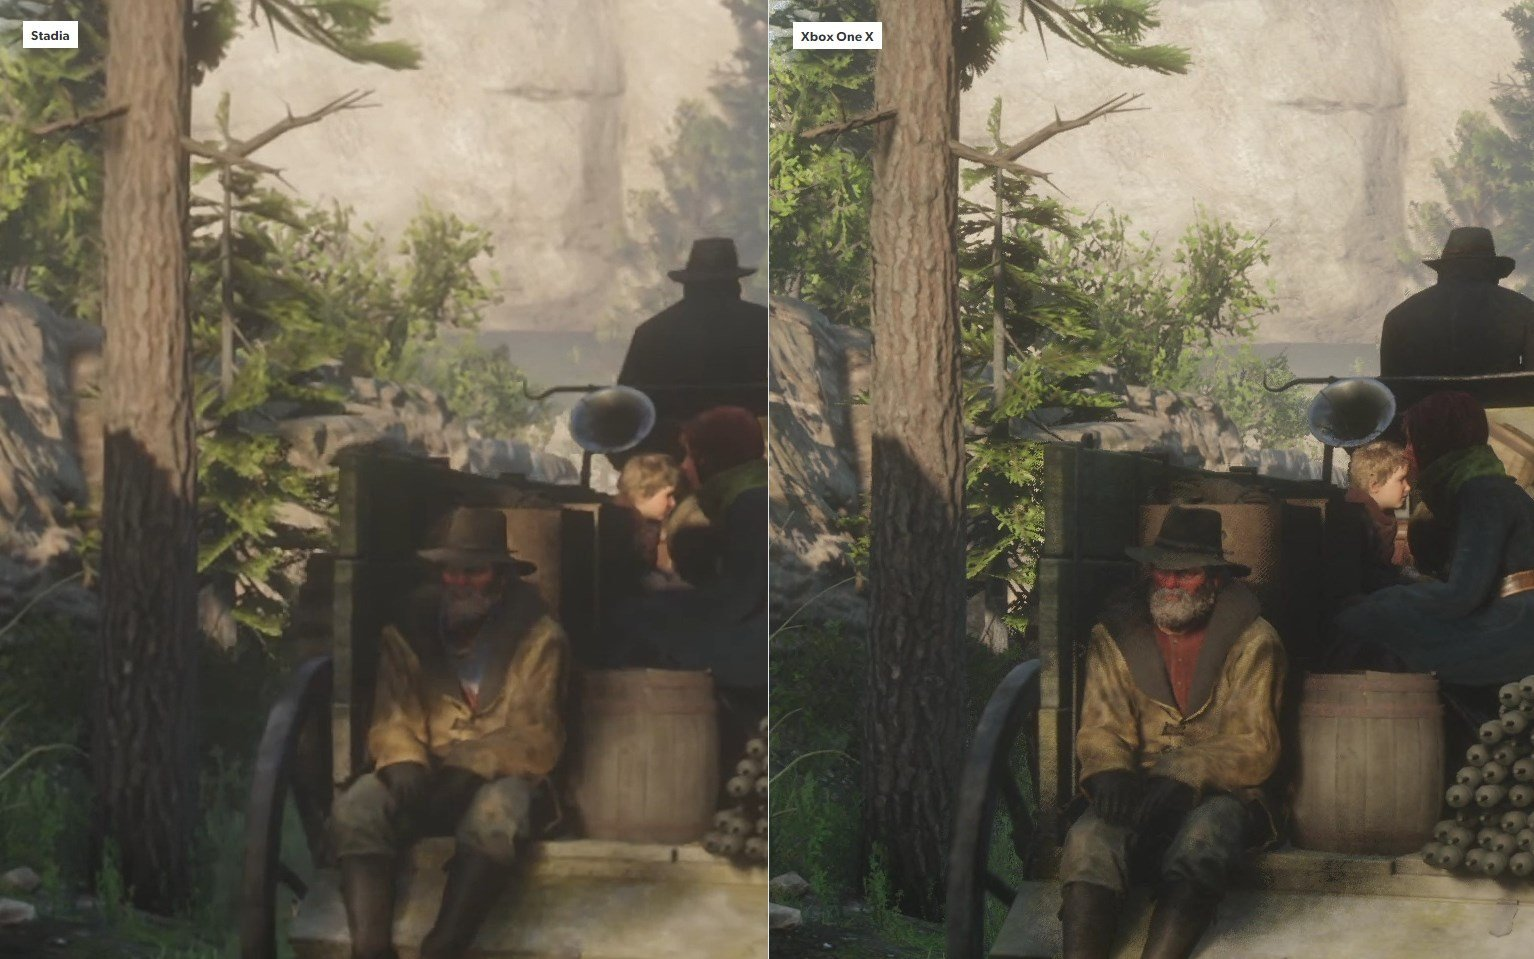 Google Stadia vs. Xbox One X Red Dead Redemption 2 - 4